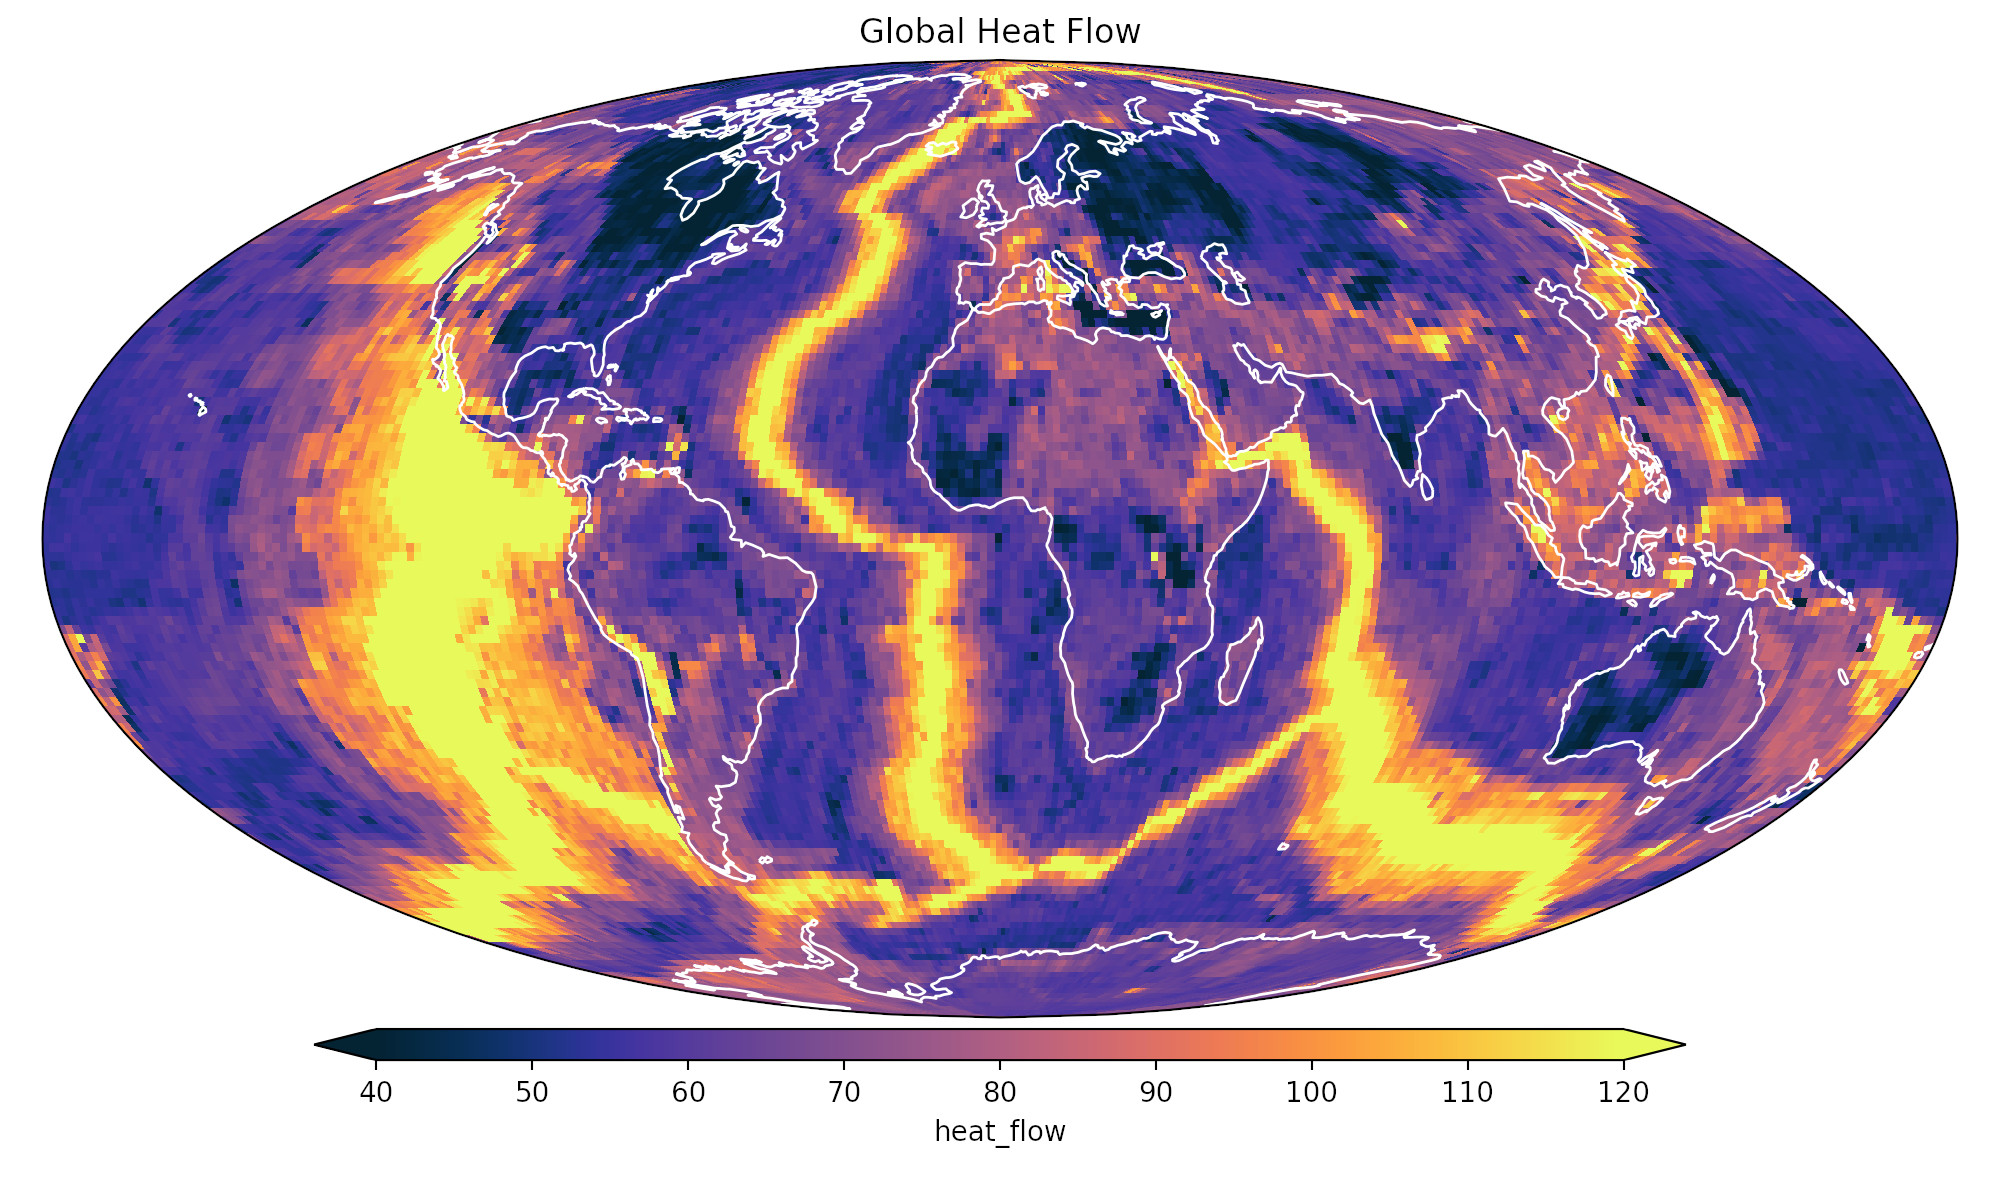 Measured geothermal heat flow across the Earth. Most of the Earth's heat loss is concentrated on mid-ocean ridges, where oceanic plates are constantly being created through volcanic activity.